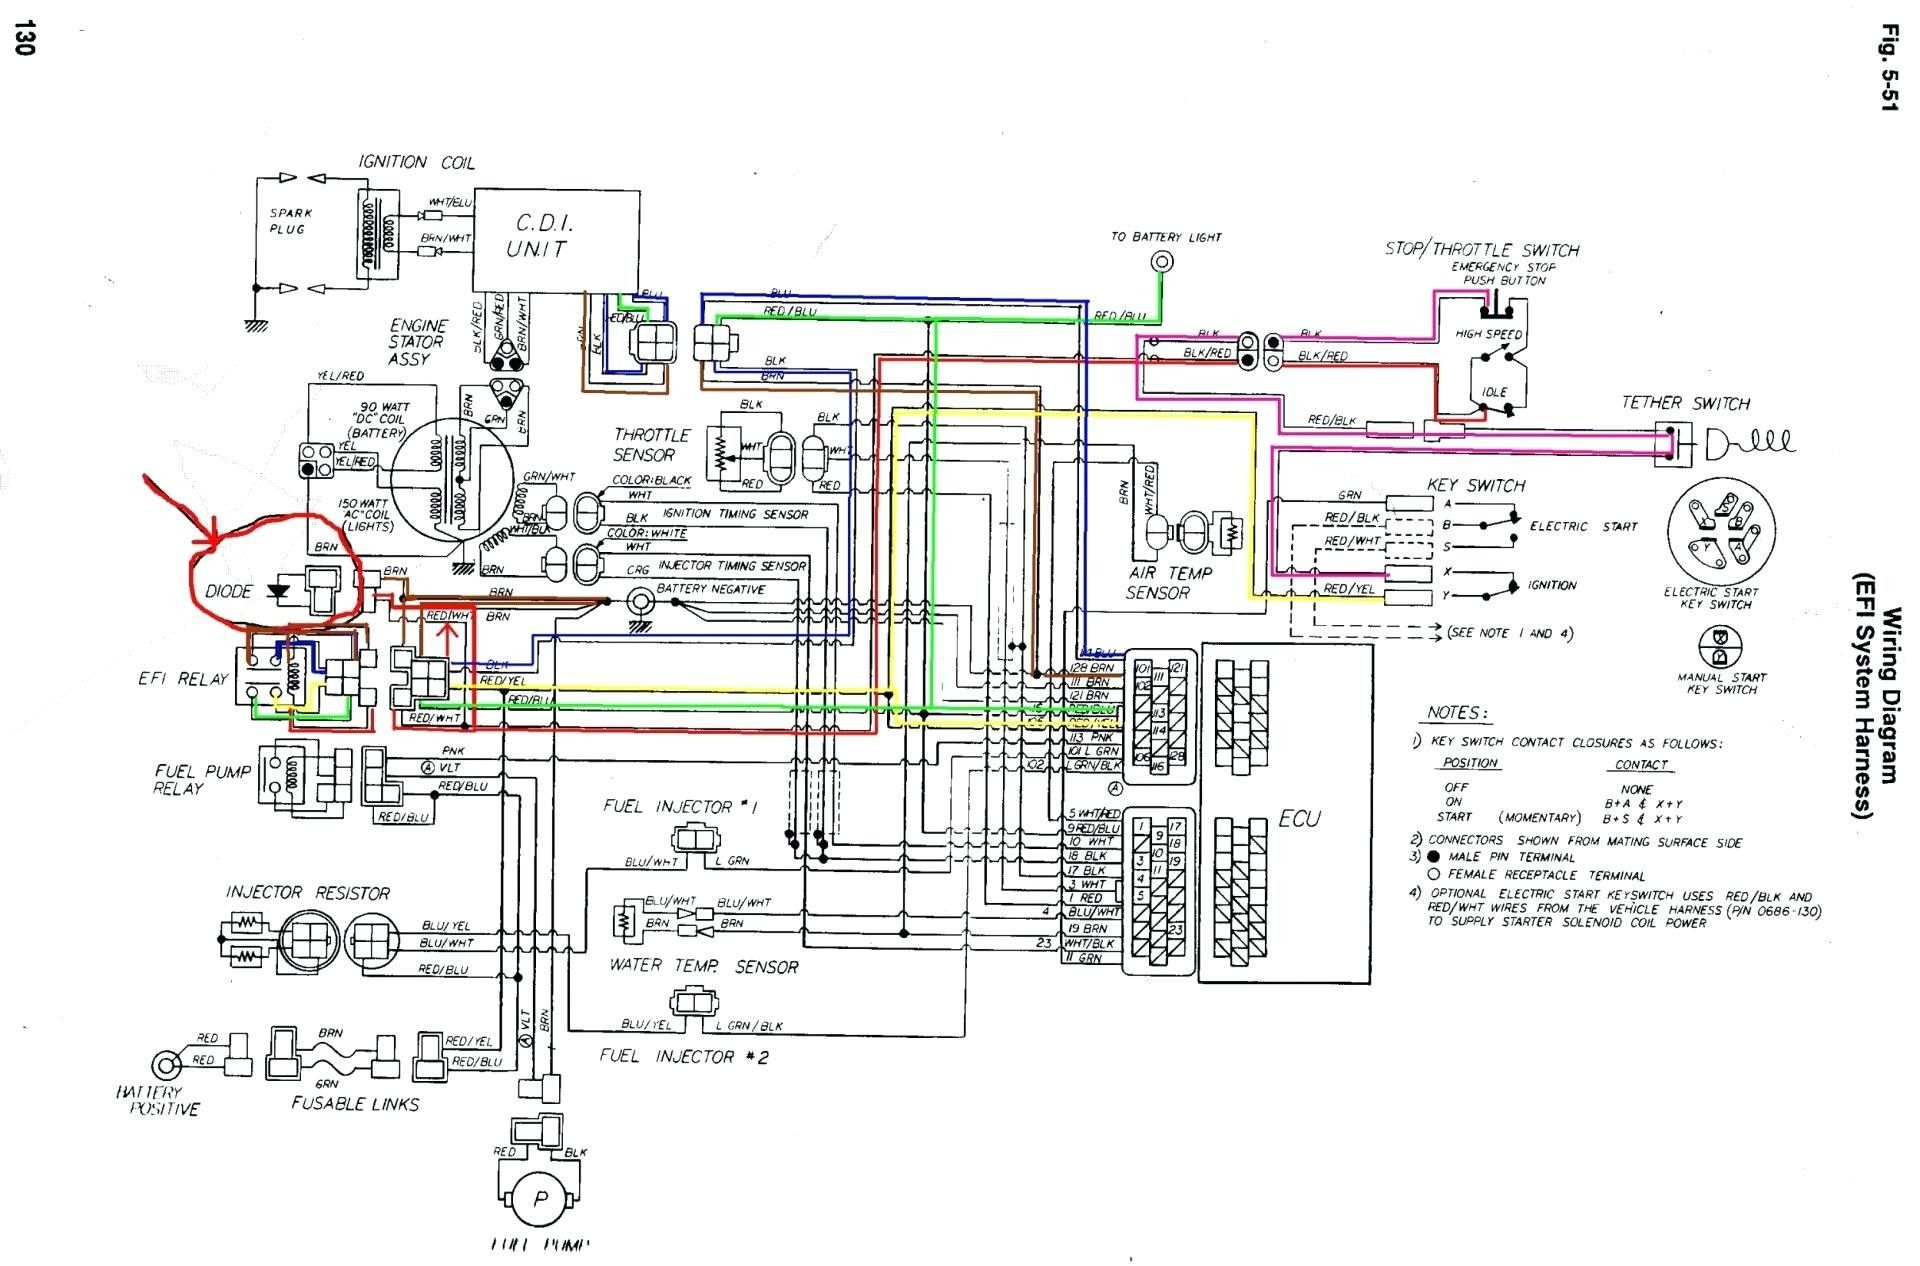 Wiring Diagram Ac Mobil Avanza Diagram Diagramtemplate Diagramsample Check More At Https Servisi Co Wiring Diagram Ac Mobi Diagram Ceiling Fan Wiring Wire